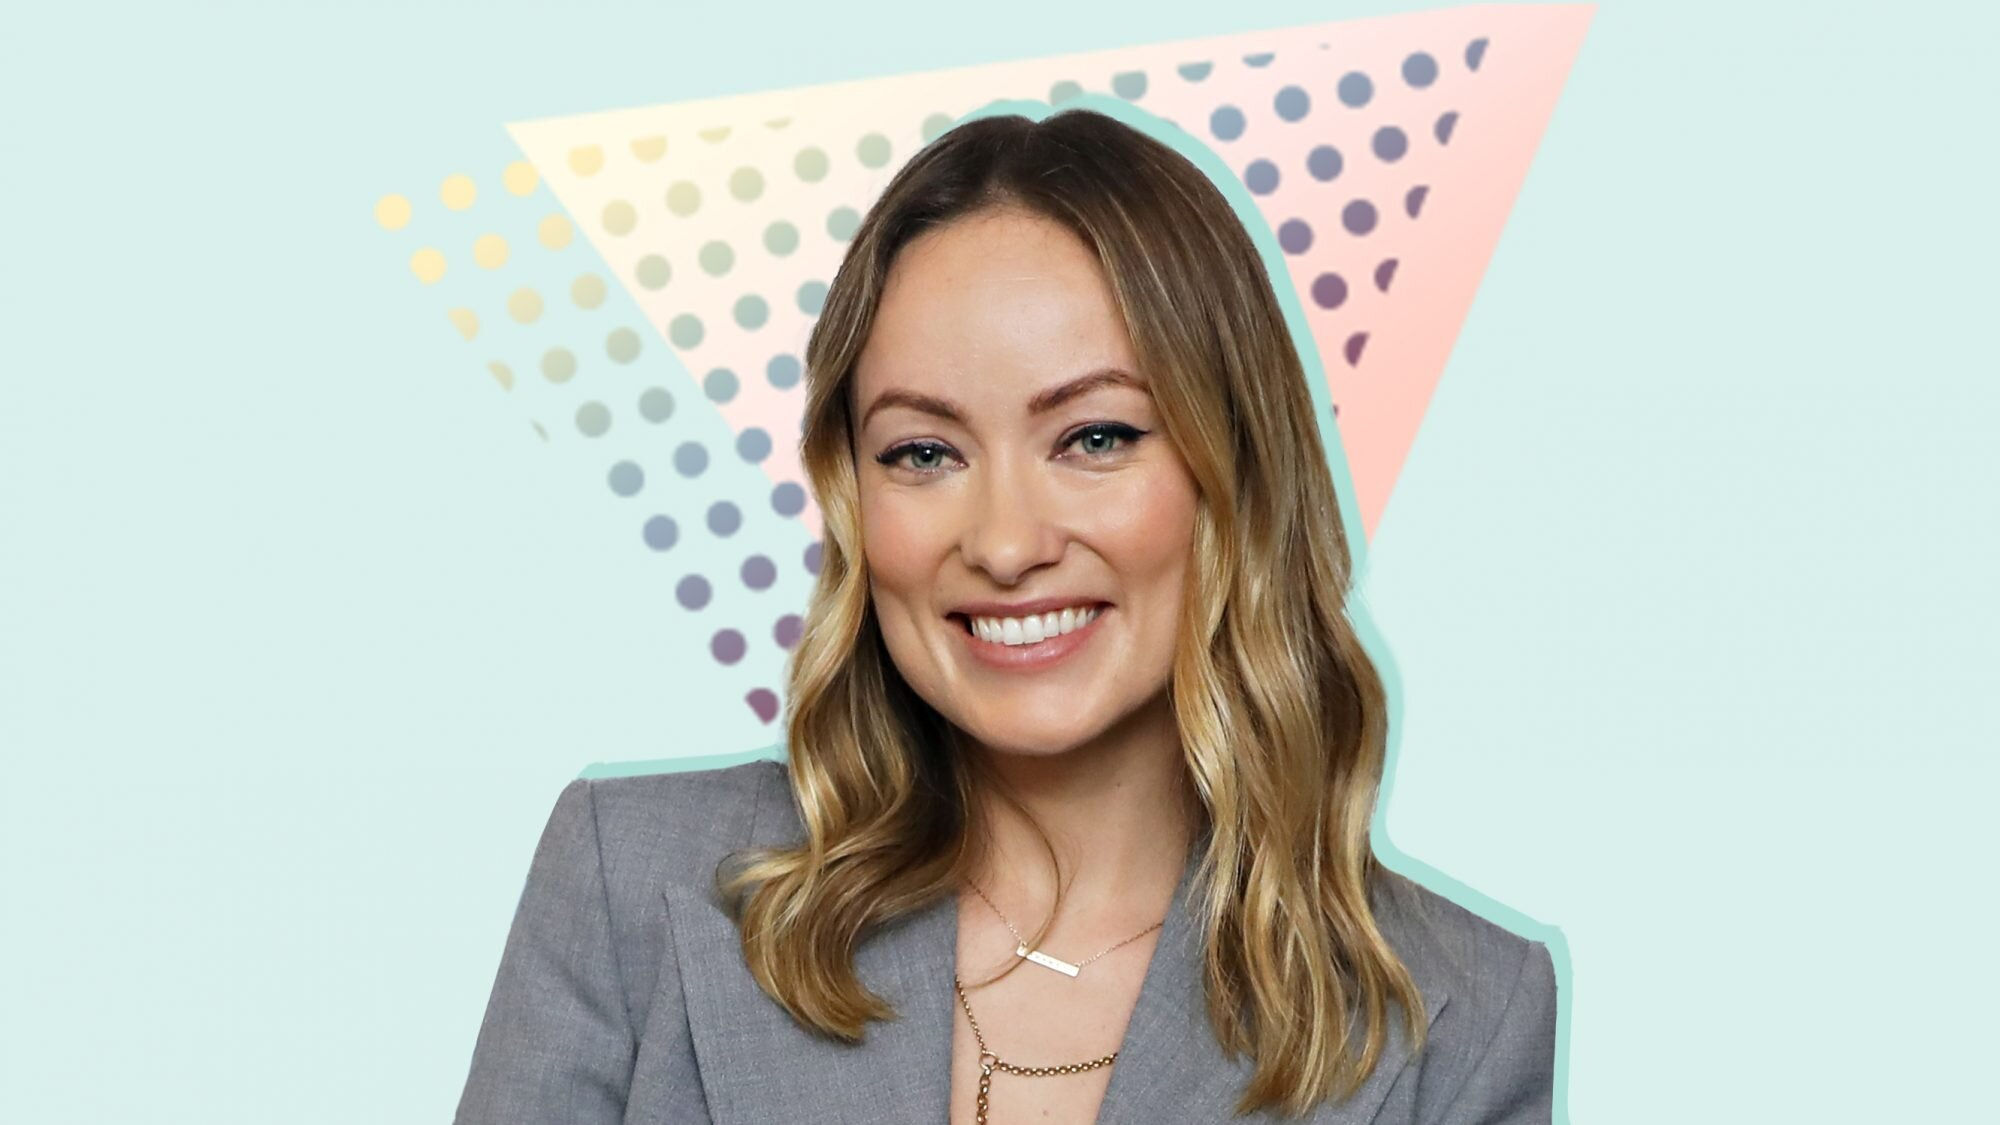 Olivia Wilde S Secret For White Teeth Is Dr Bronner S Toothpaste